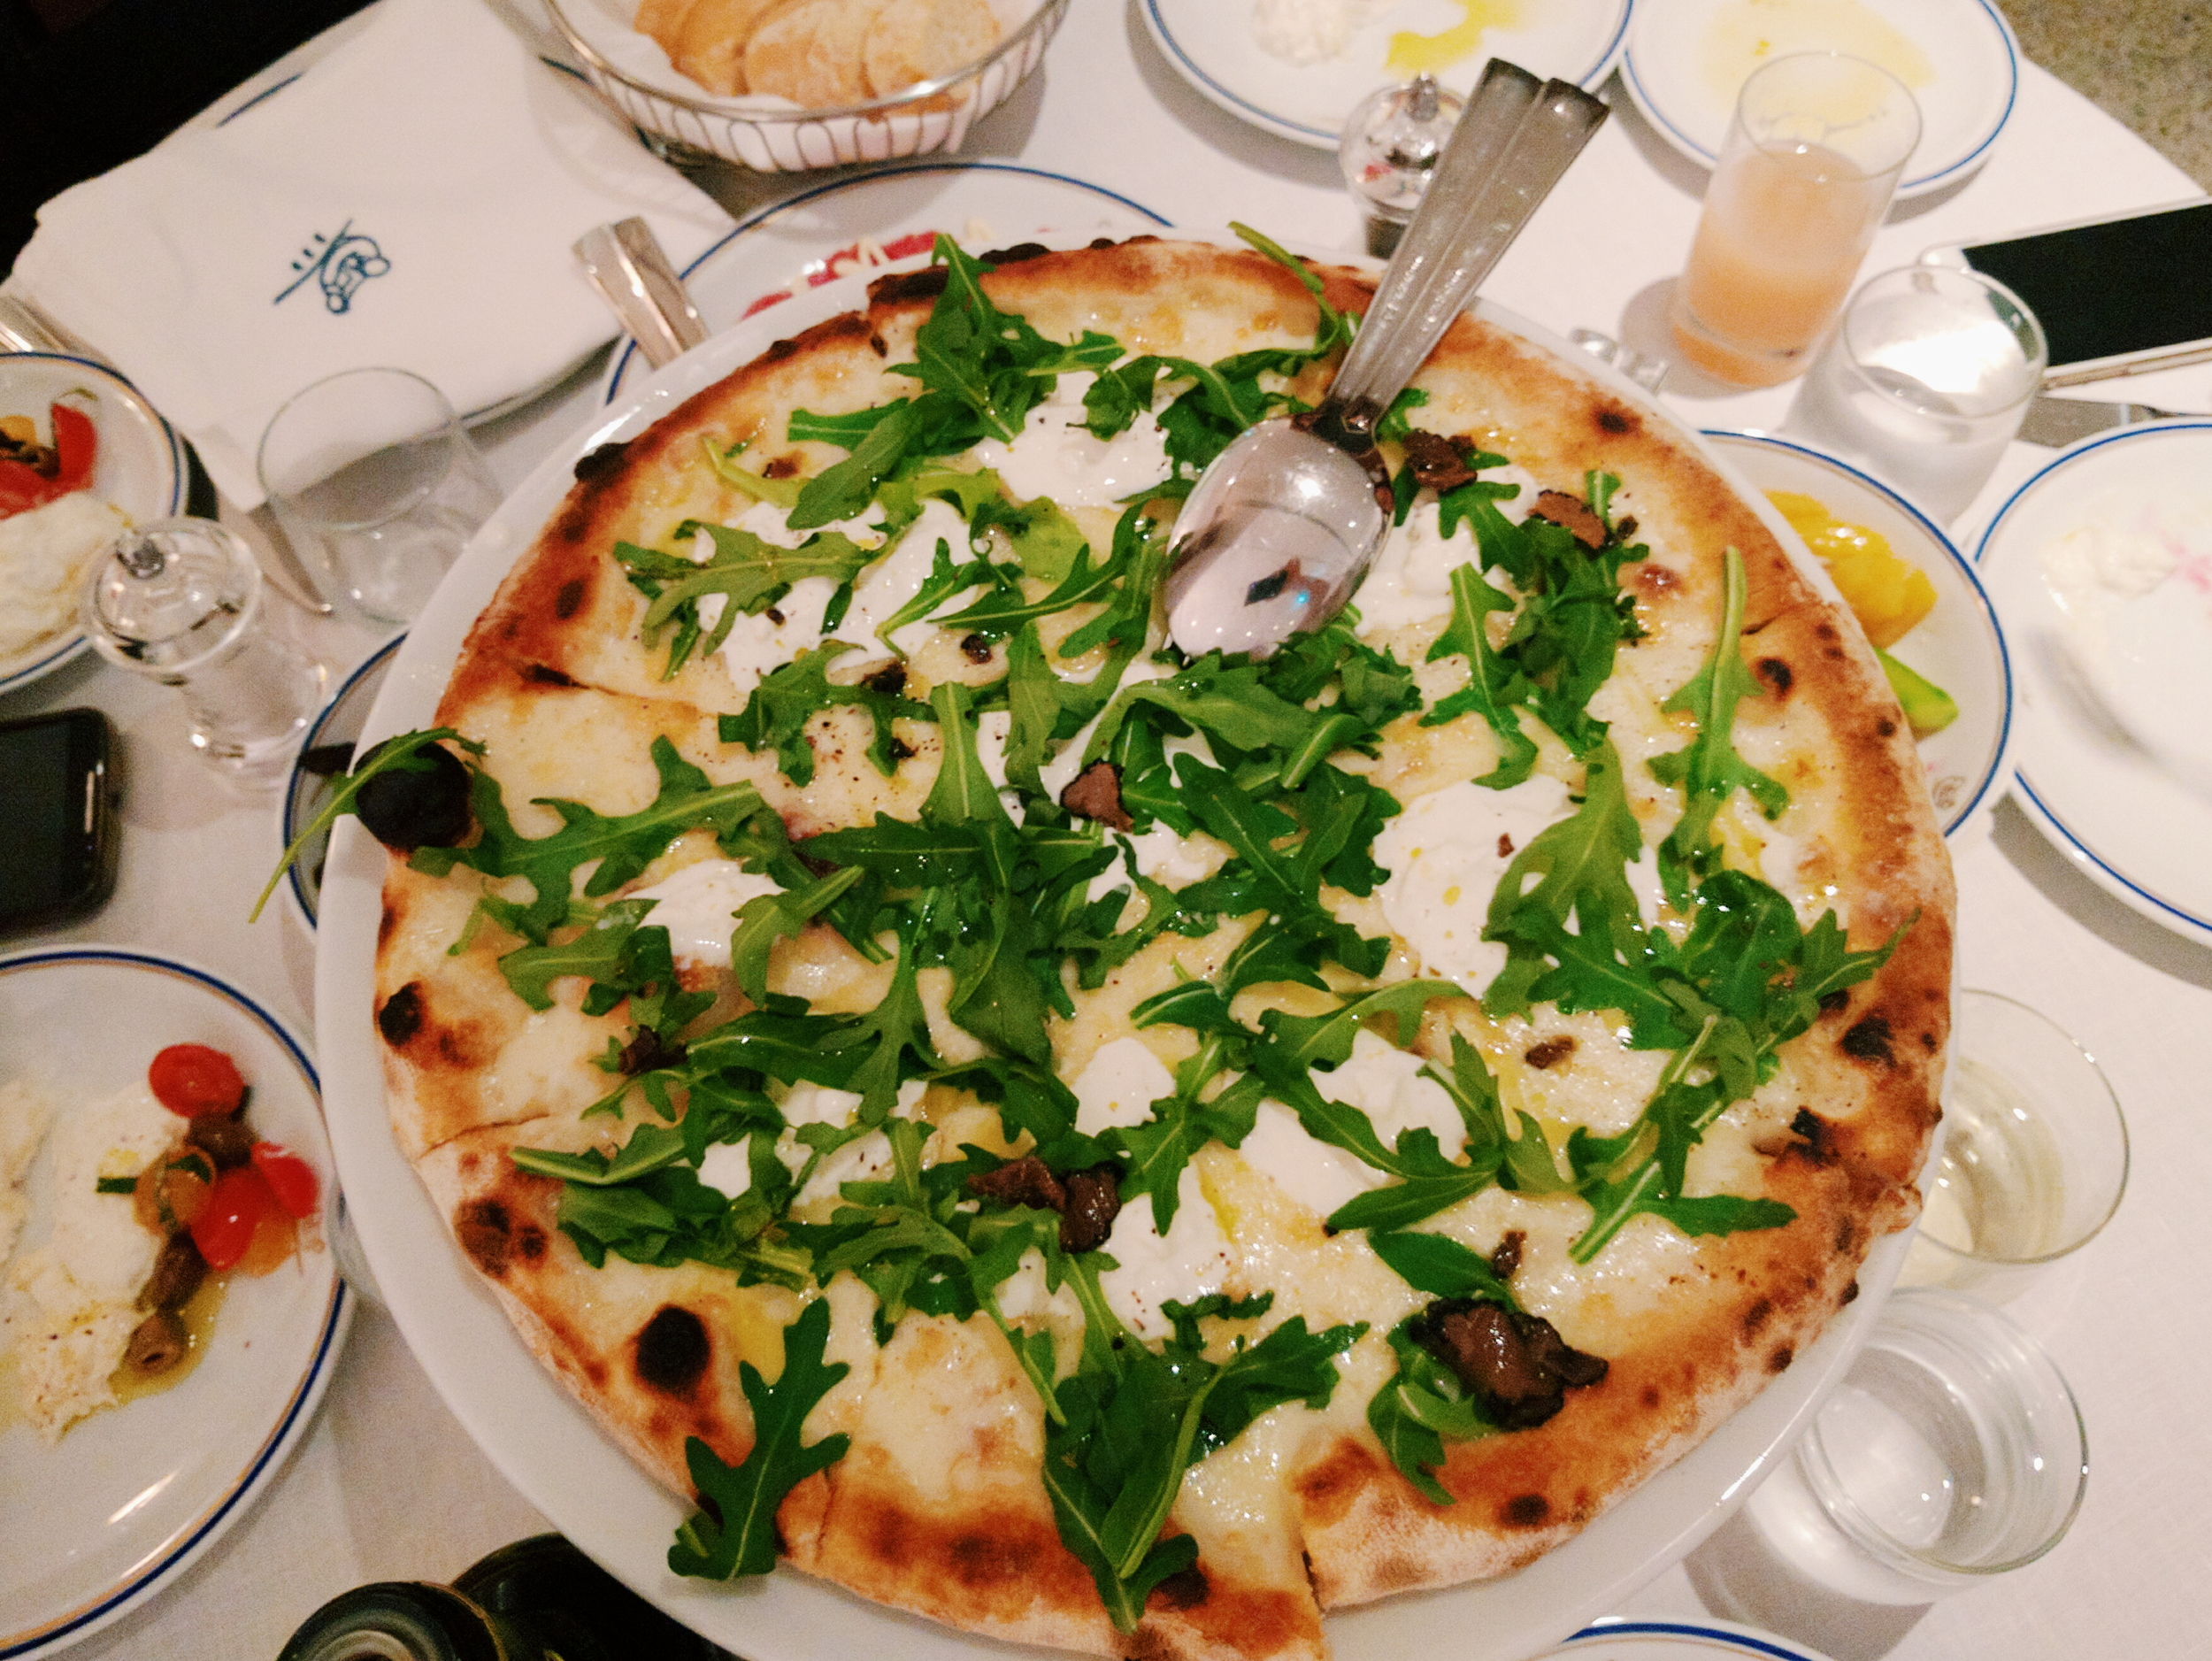 Burrata and truffle pizza